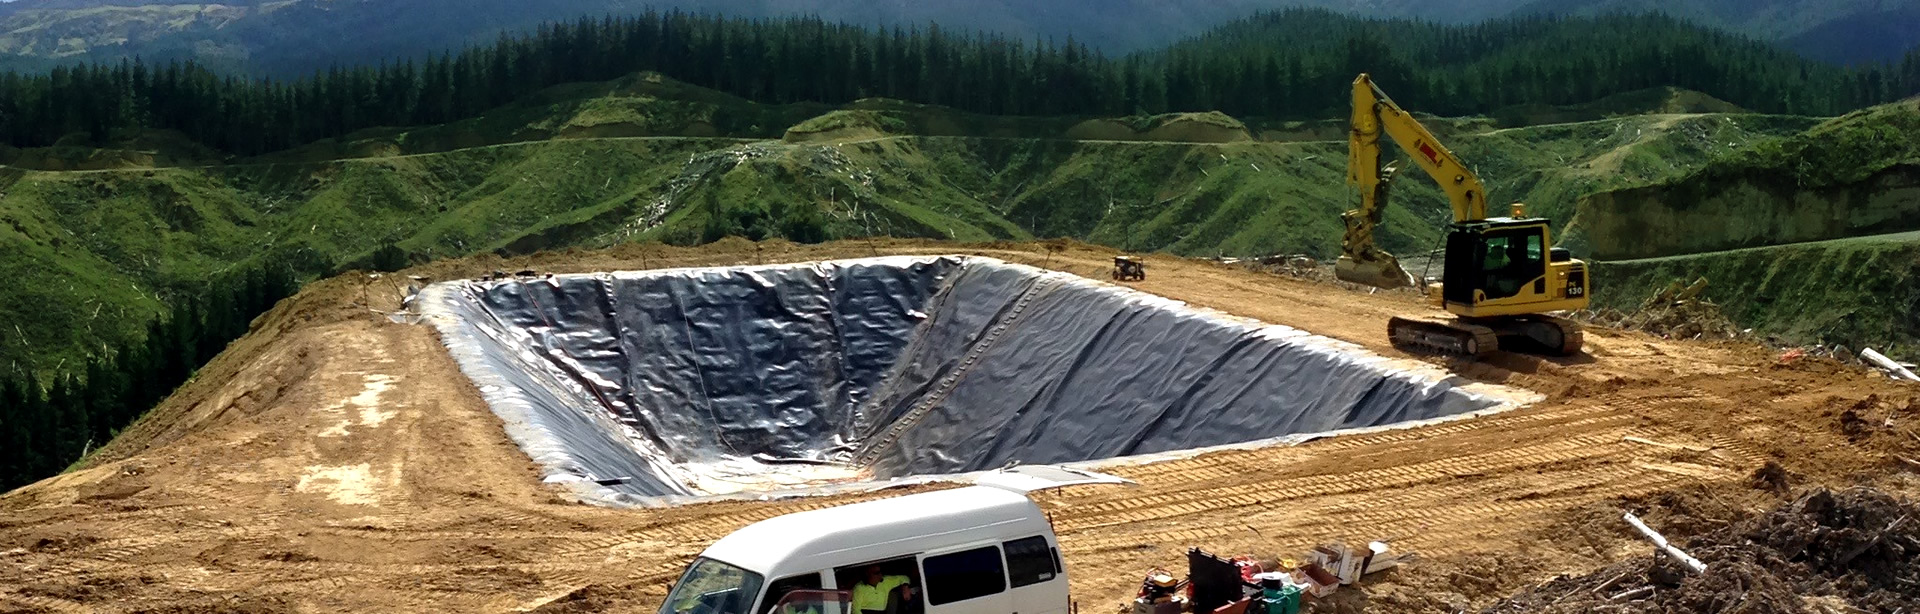 Geomembranes Installation and Supply